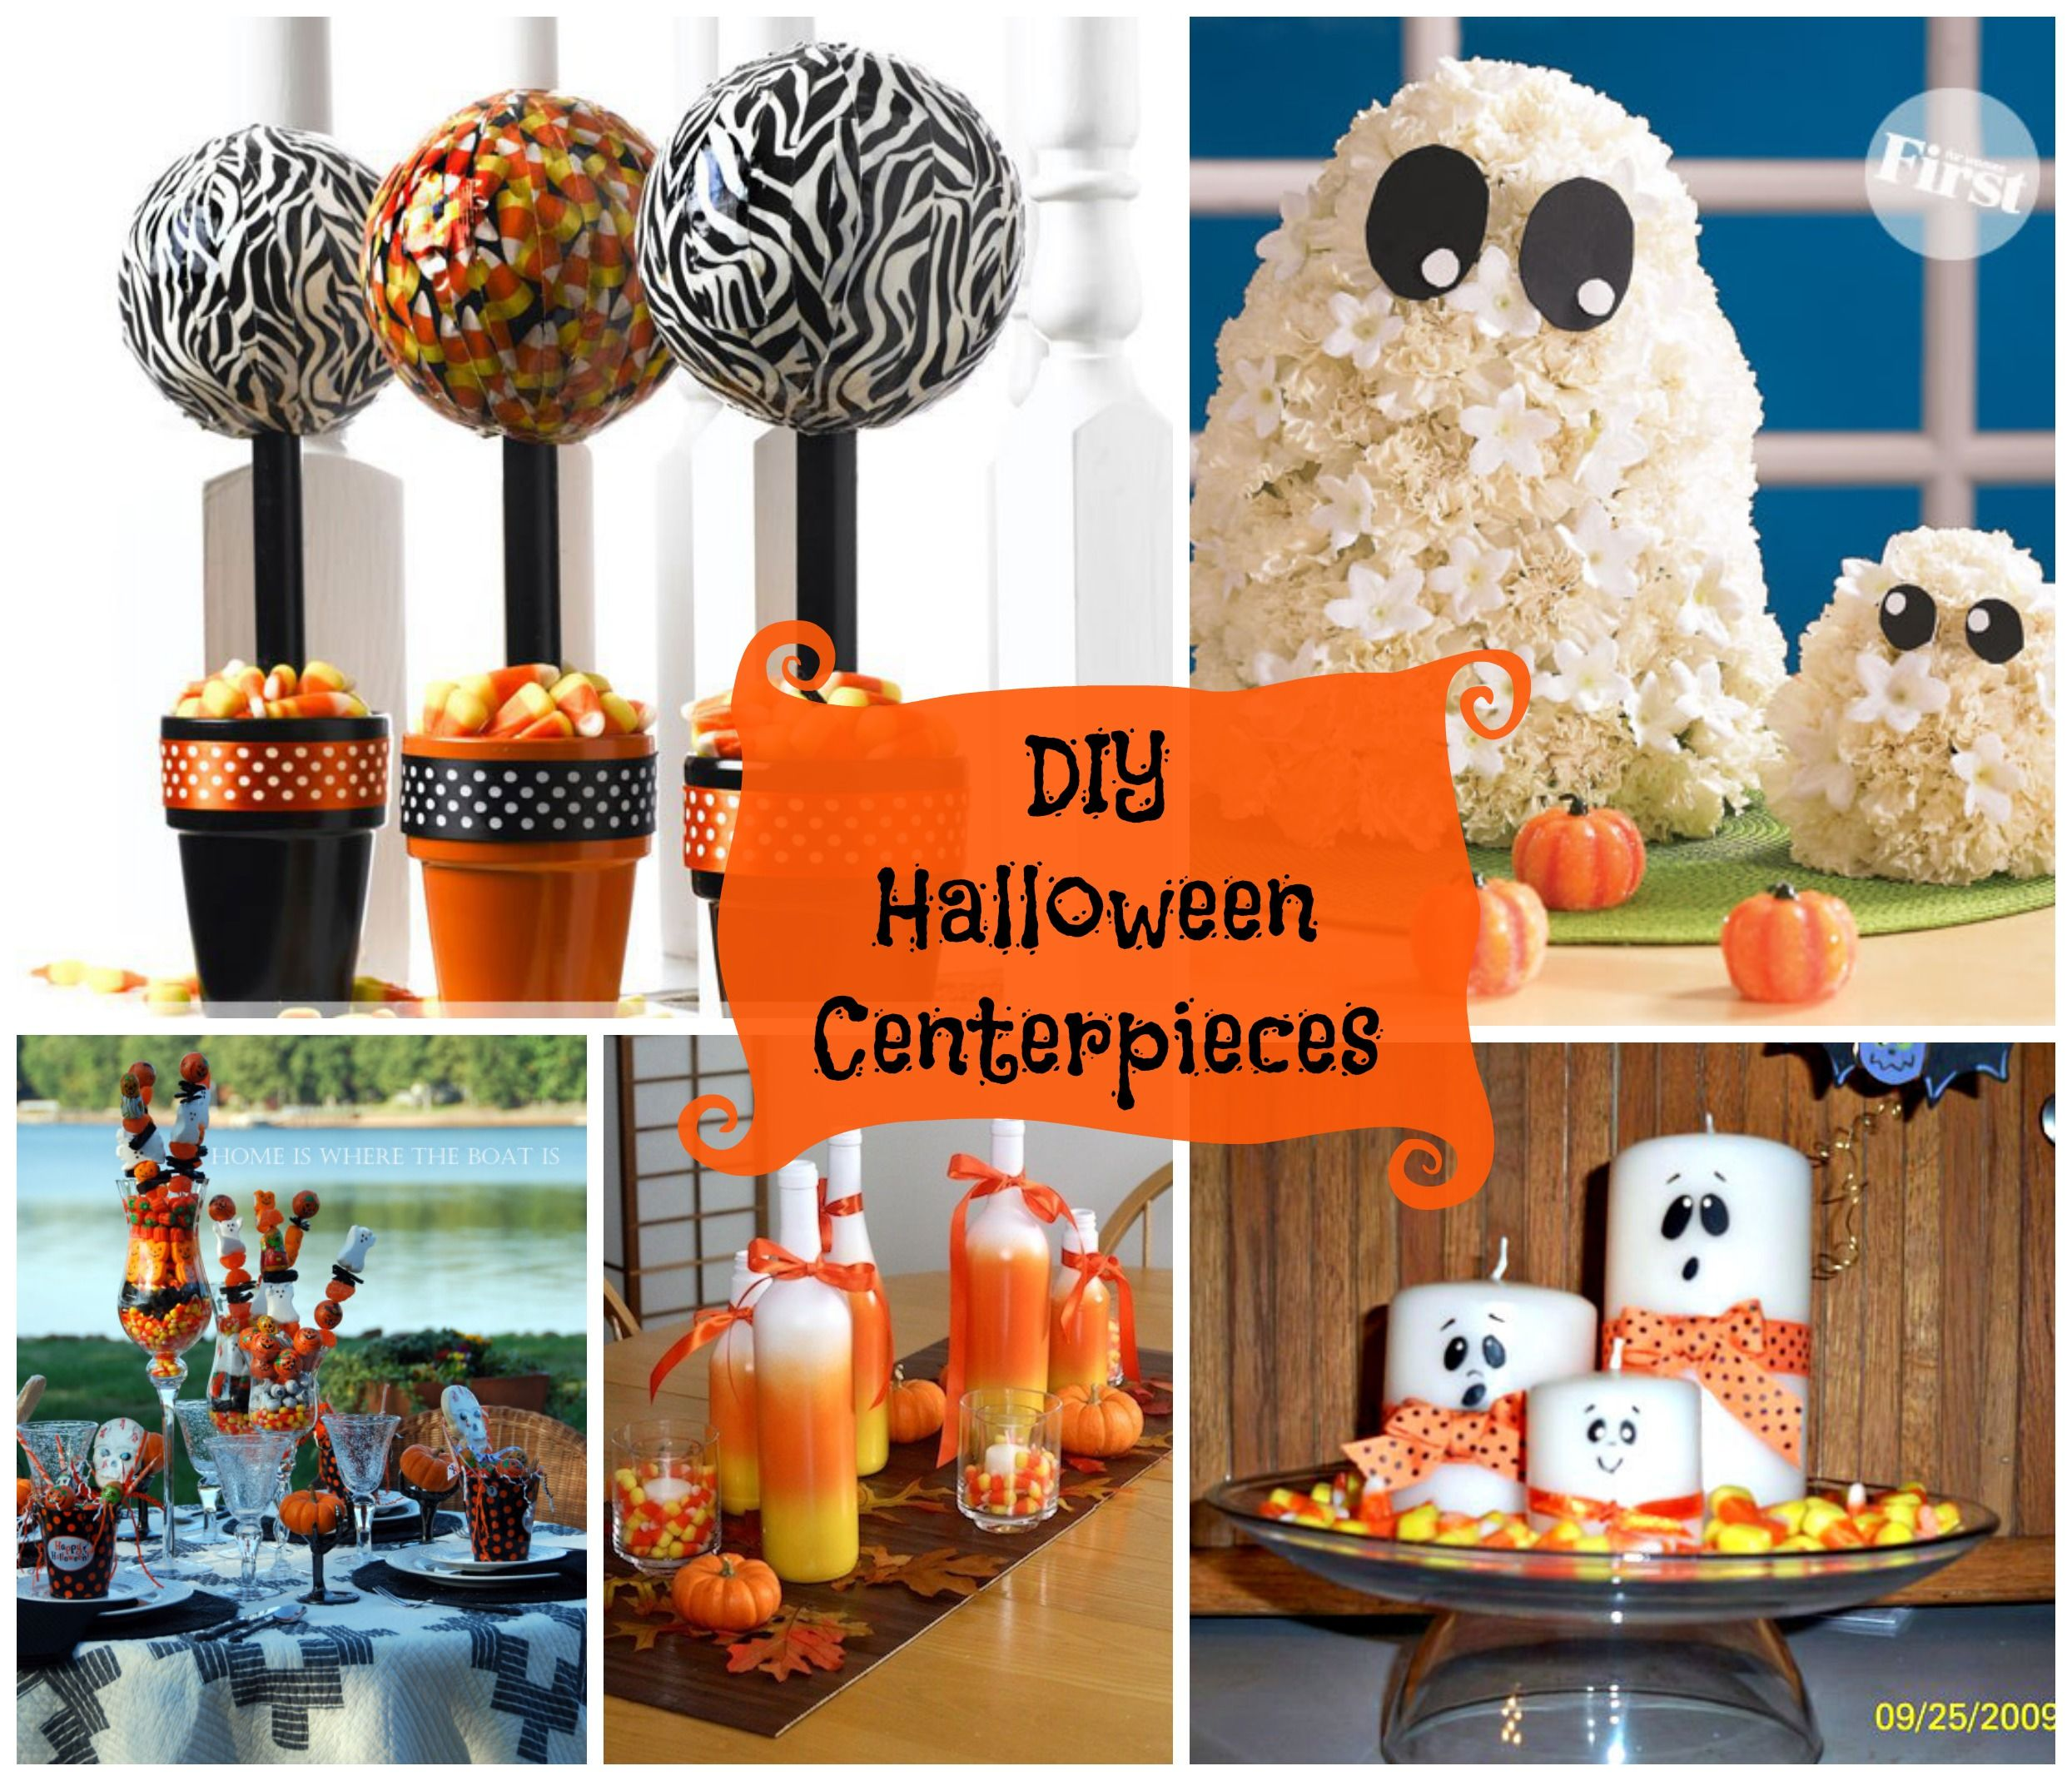 diy halloween centerpieces lots of fun new ideas easy - Homemade Halloween Centerpieces